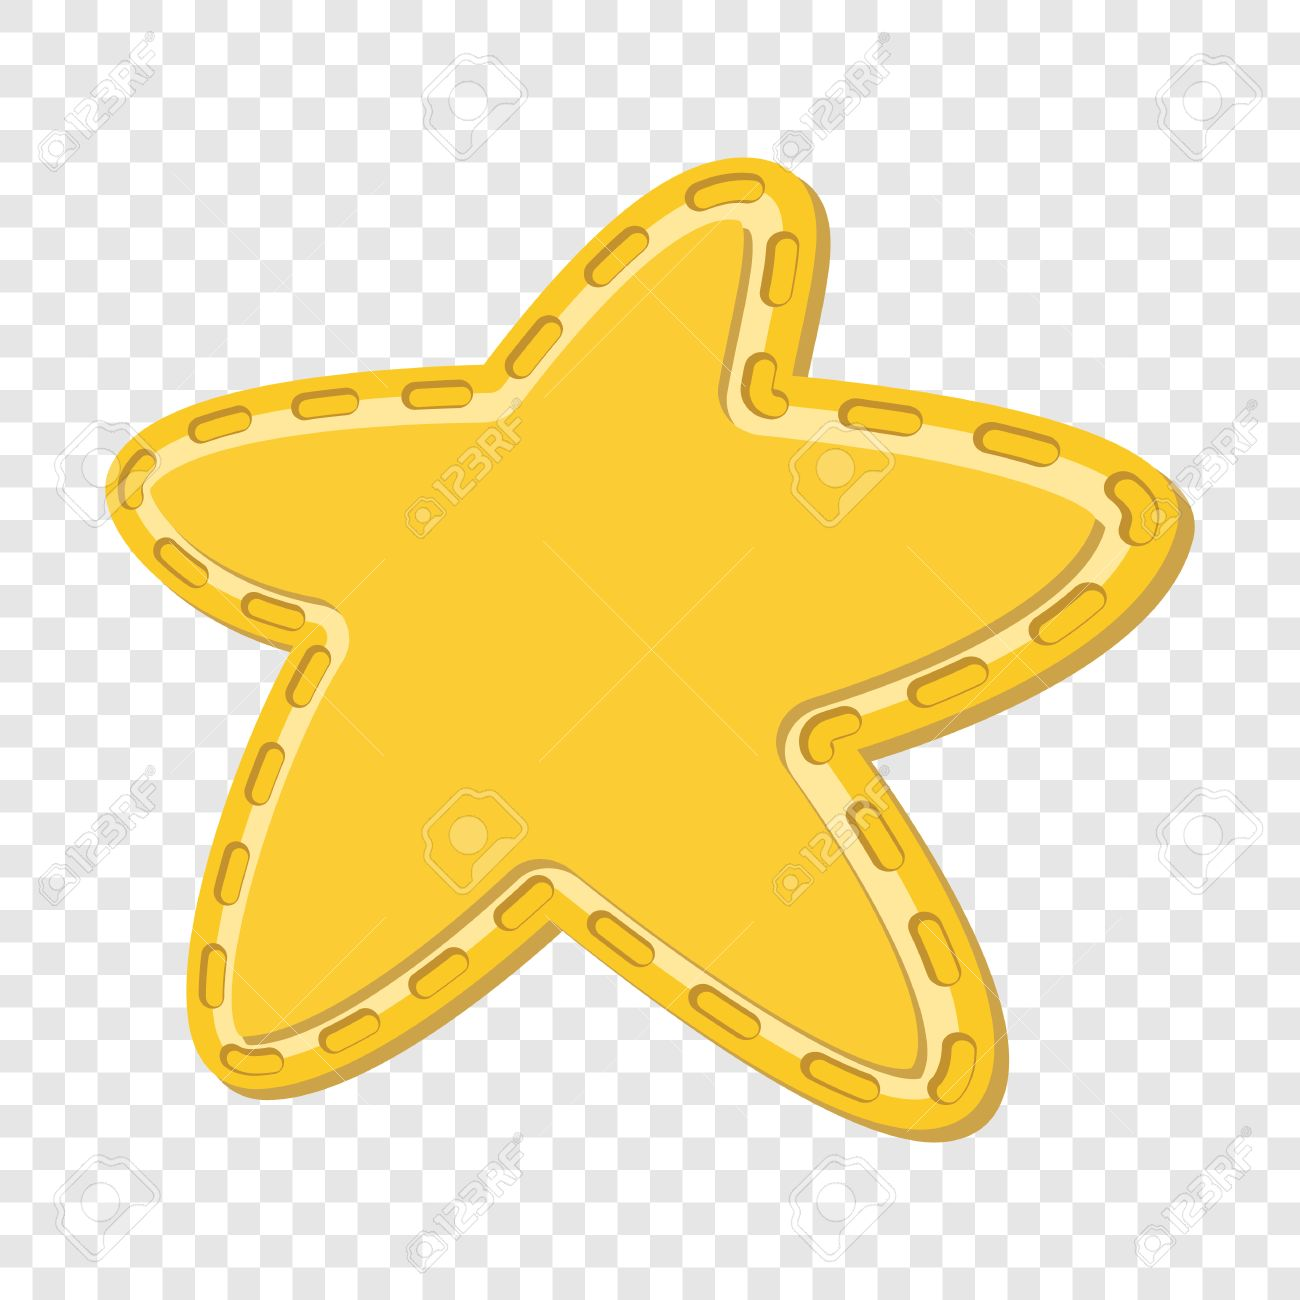 Star Icon In Cartoon Style On Transparent Background Royalty Free Cliparts Vectors And Stock Illustration Image 51535057 Clear background plant clip art. star icon in cartoon style on transparent background